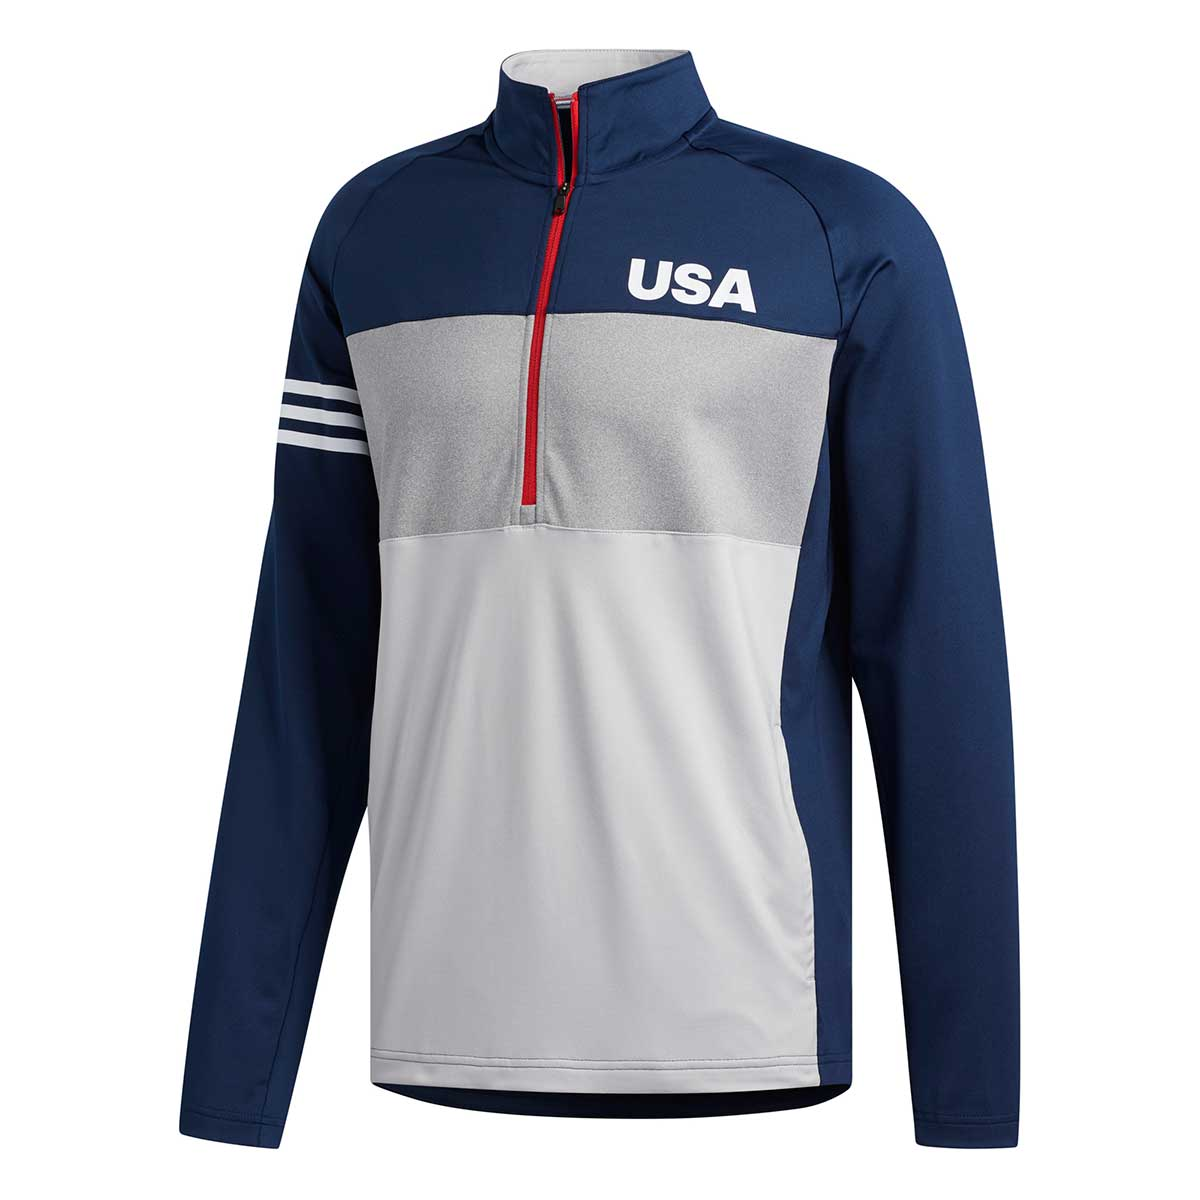 Adidas Men's USA Golf 3-Stripes Competition Pullover